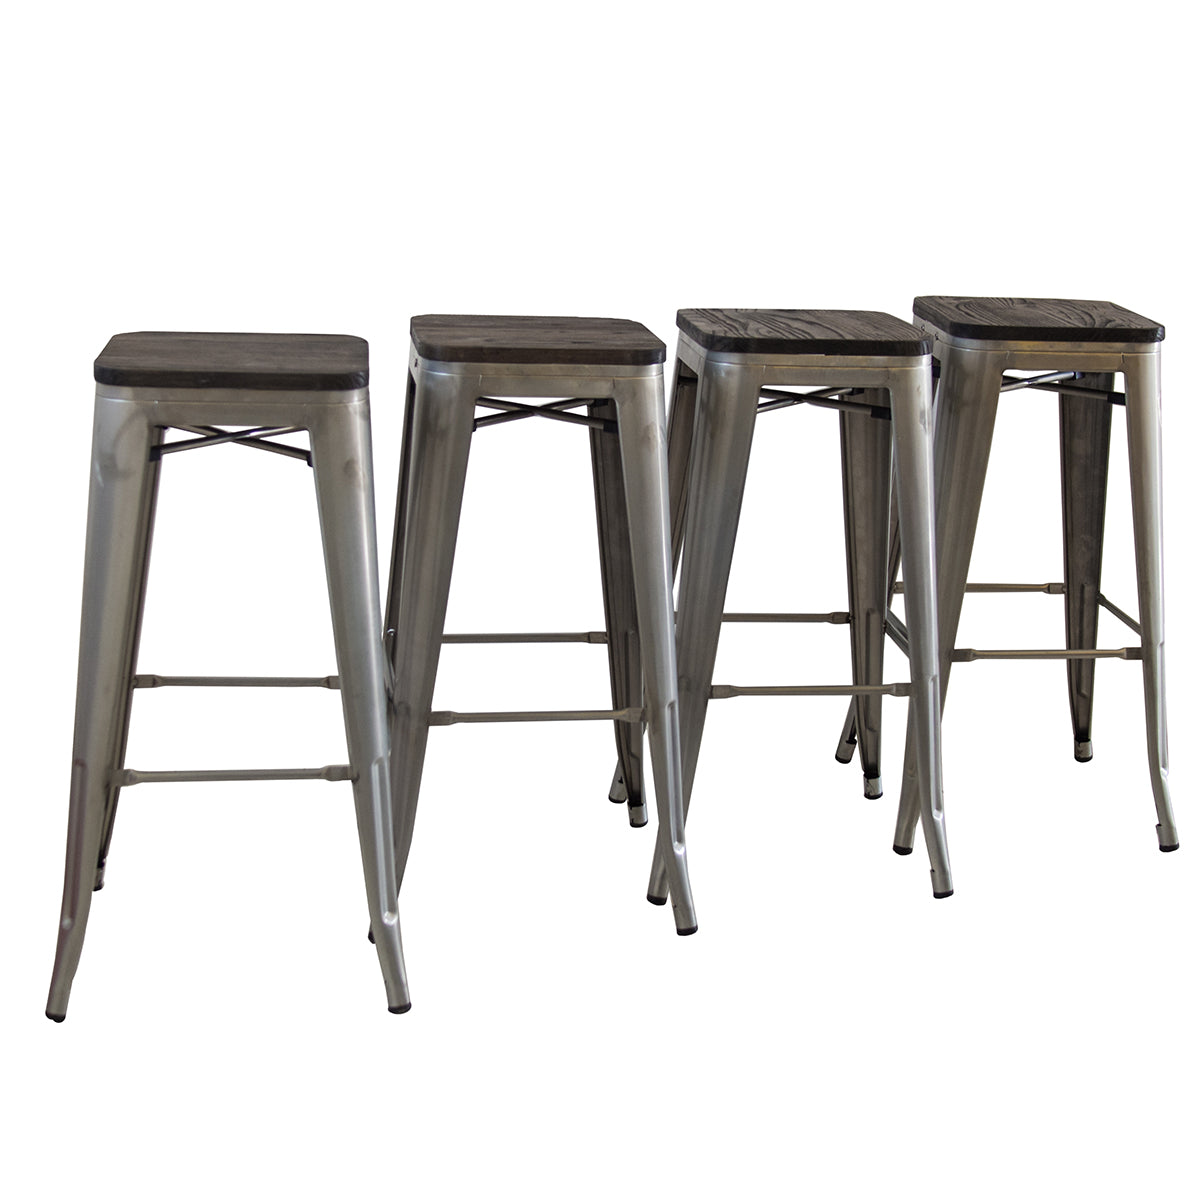 Remarkable Buschman Metal Bar Stools 30 Bar Height Indoor Outdoor And Stackable Set Of 4 Galvanized With Wooden Seat Onthecornerstone Fun Painted Chair Ideas Images Onthecornerstoneorg